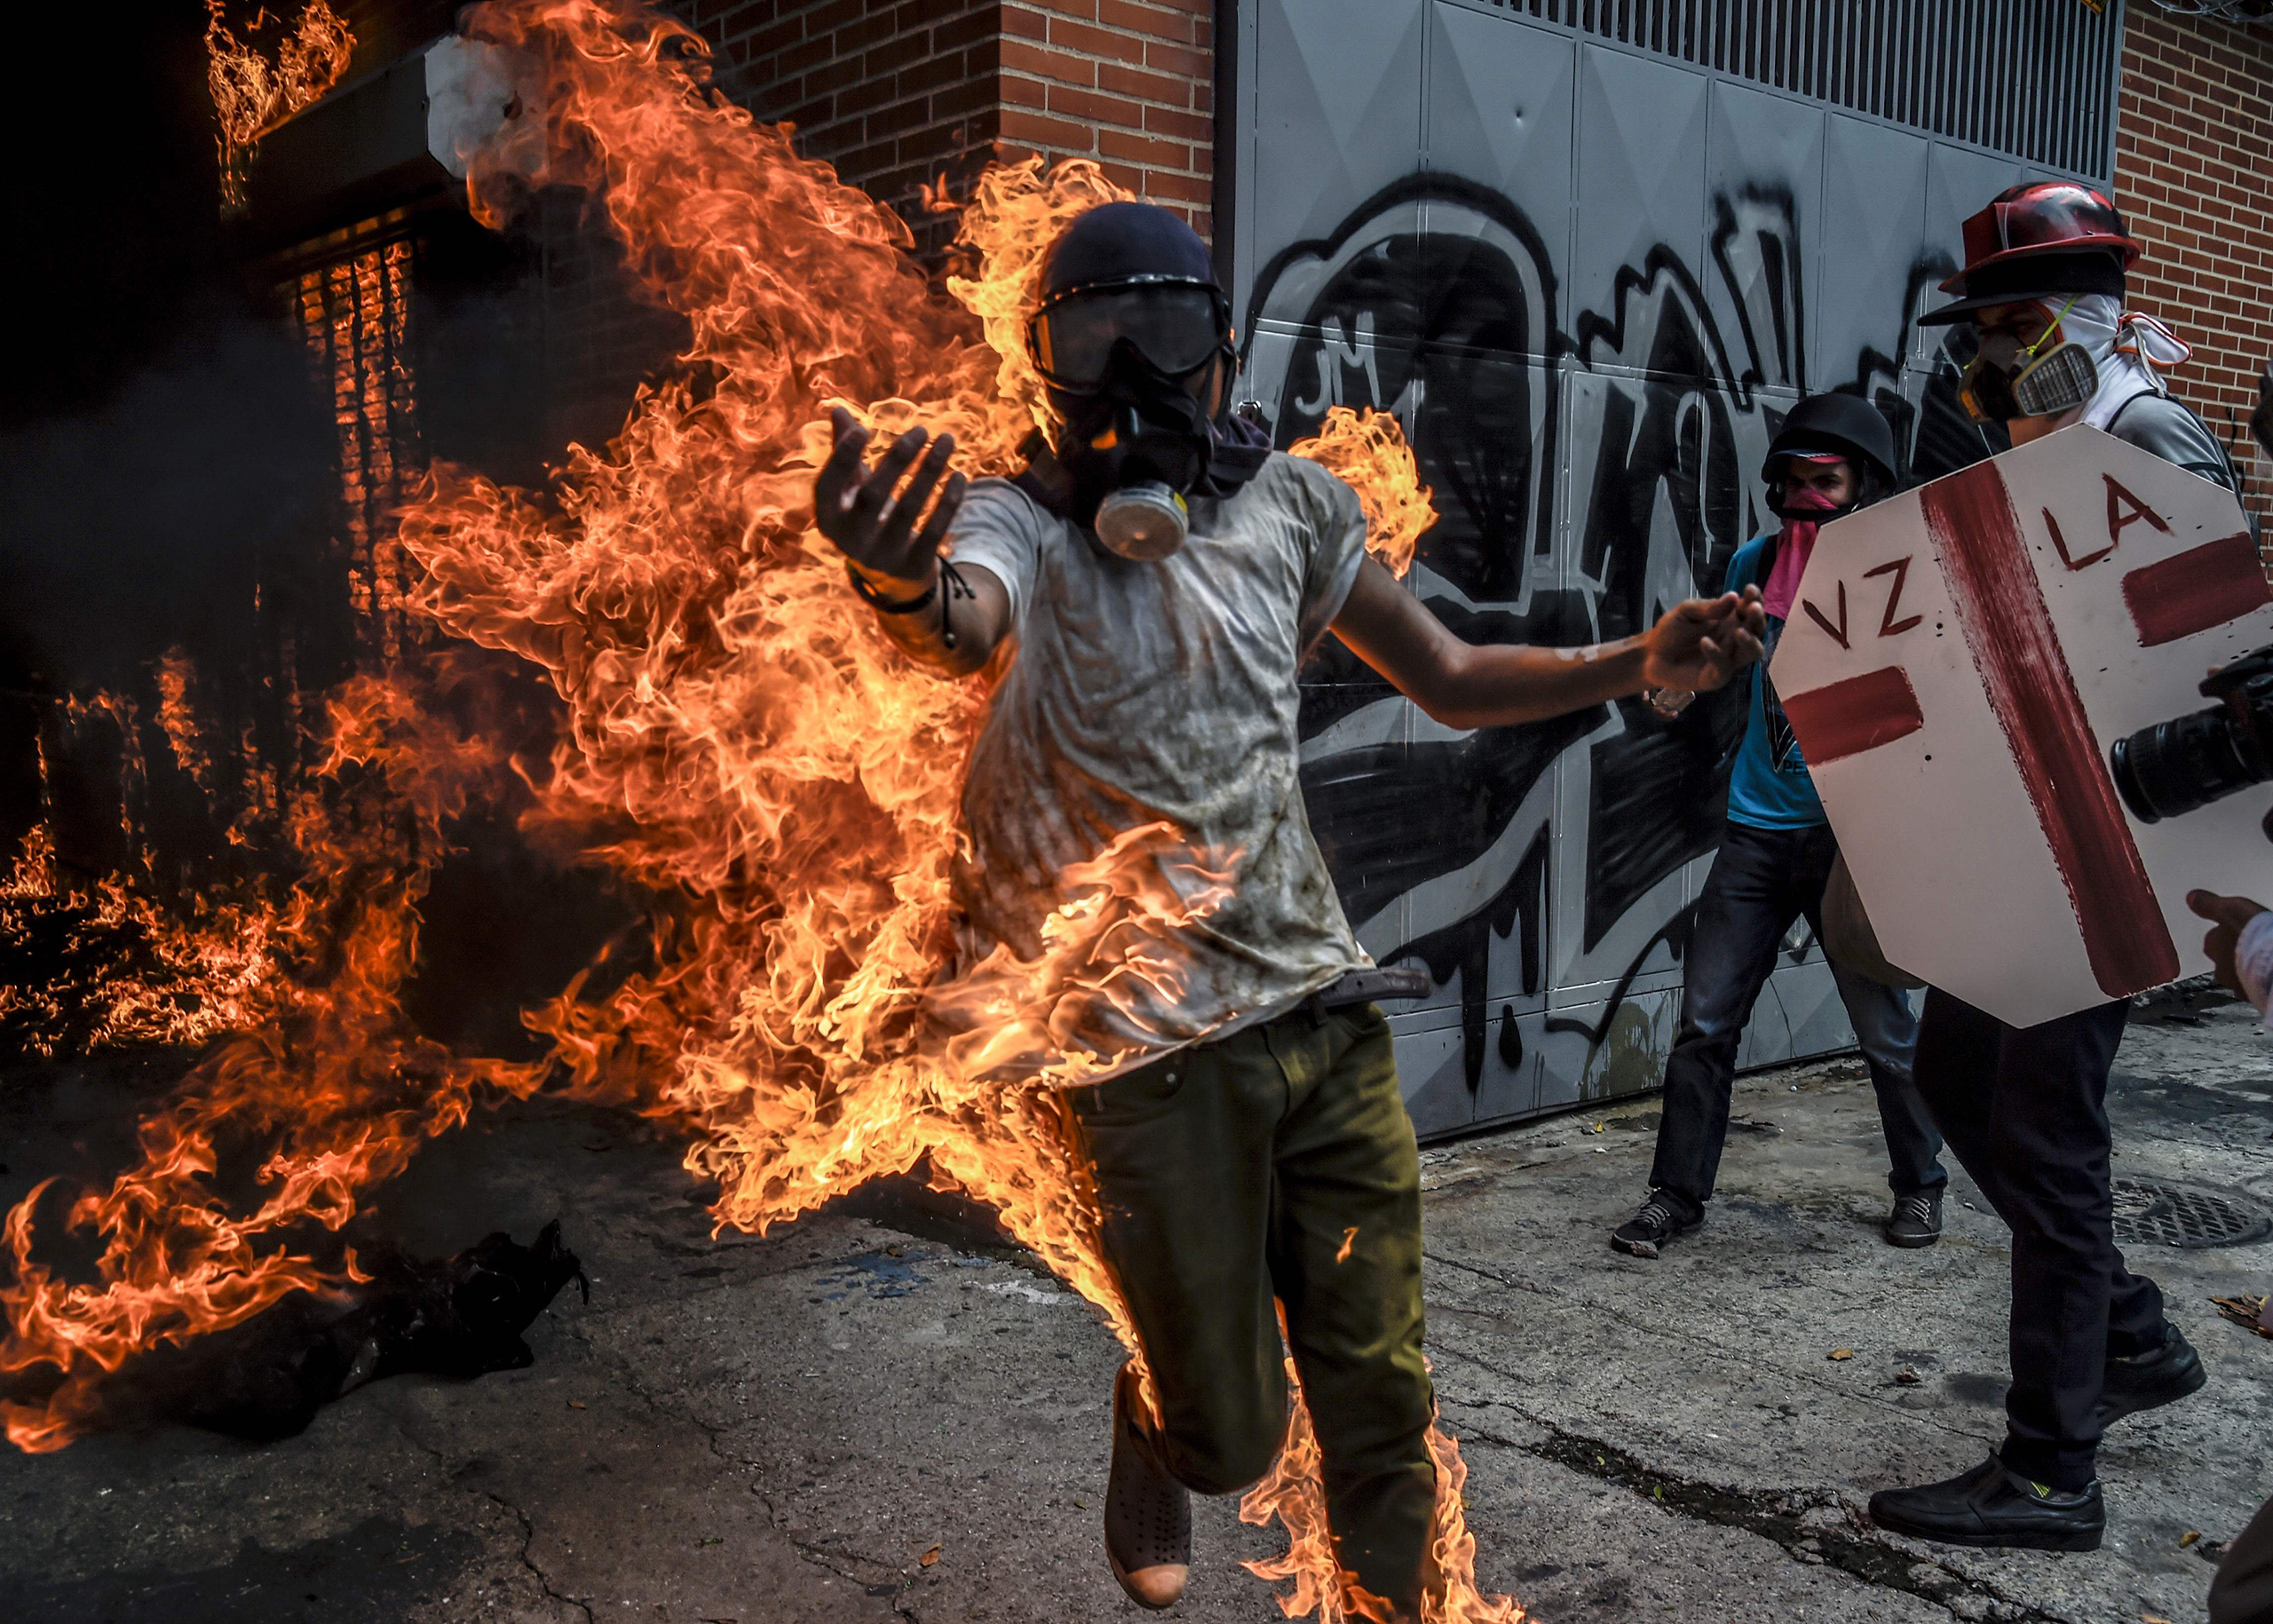 A demonstrator set ablaze during an anti-Maduro protest reaches out in Caracas on May 3, 2017.